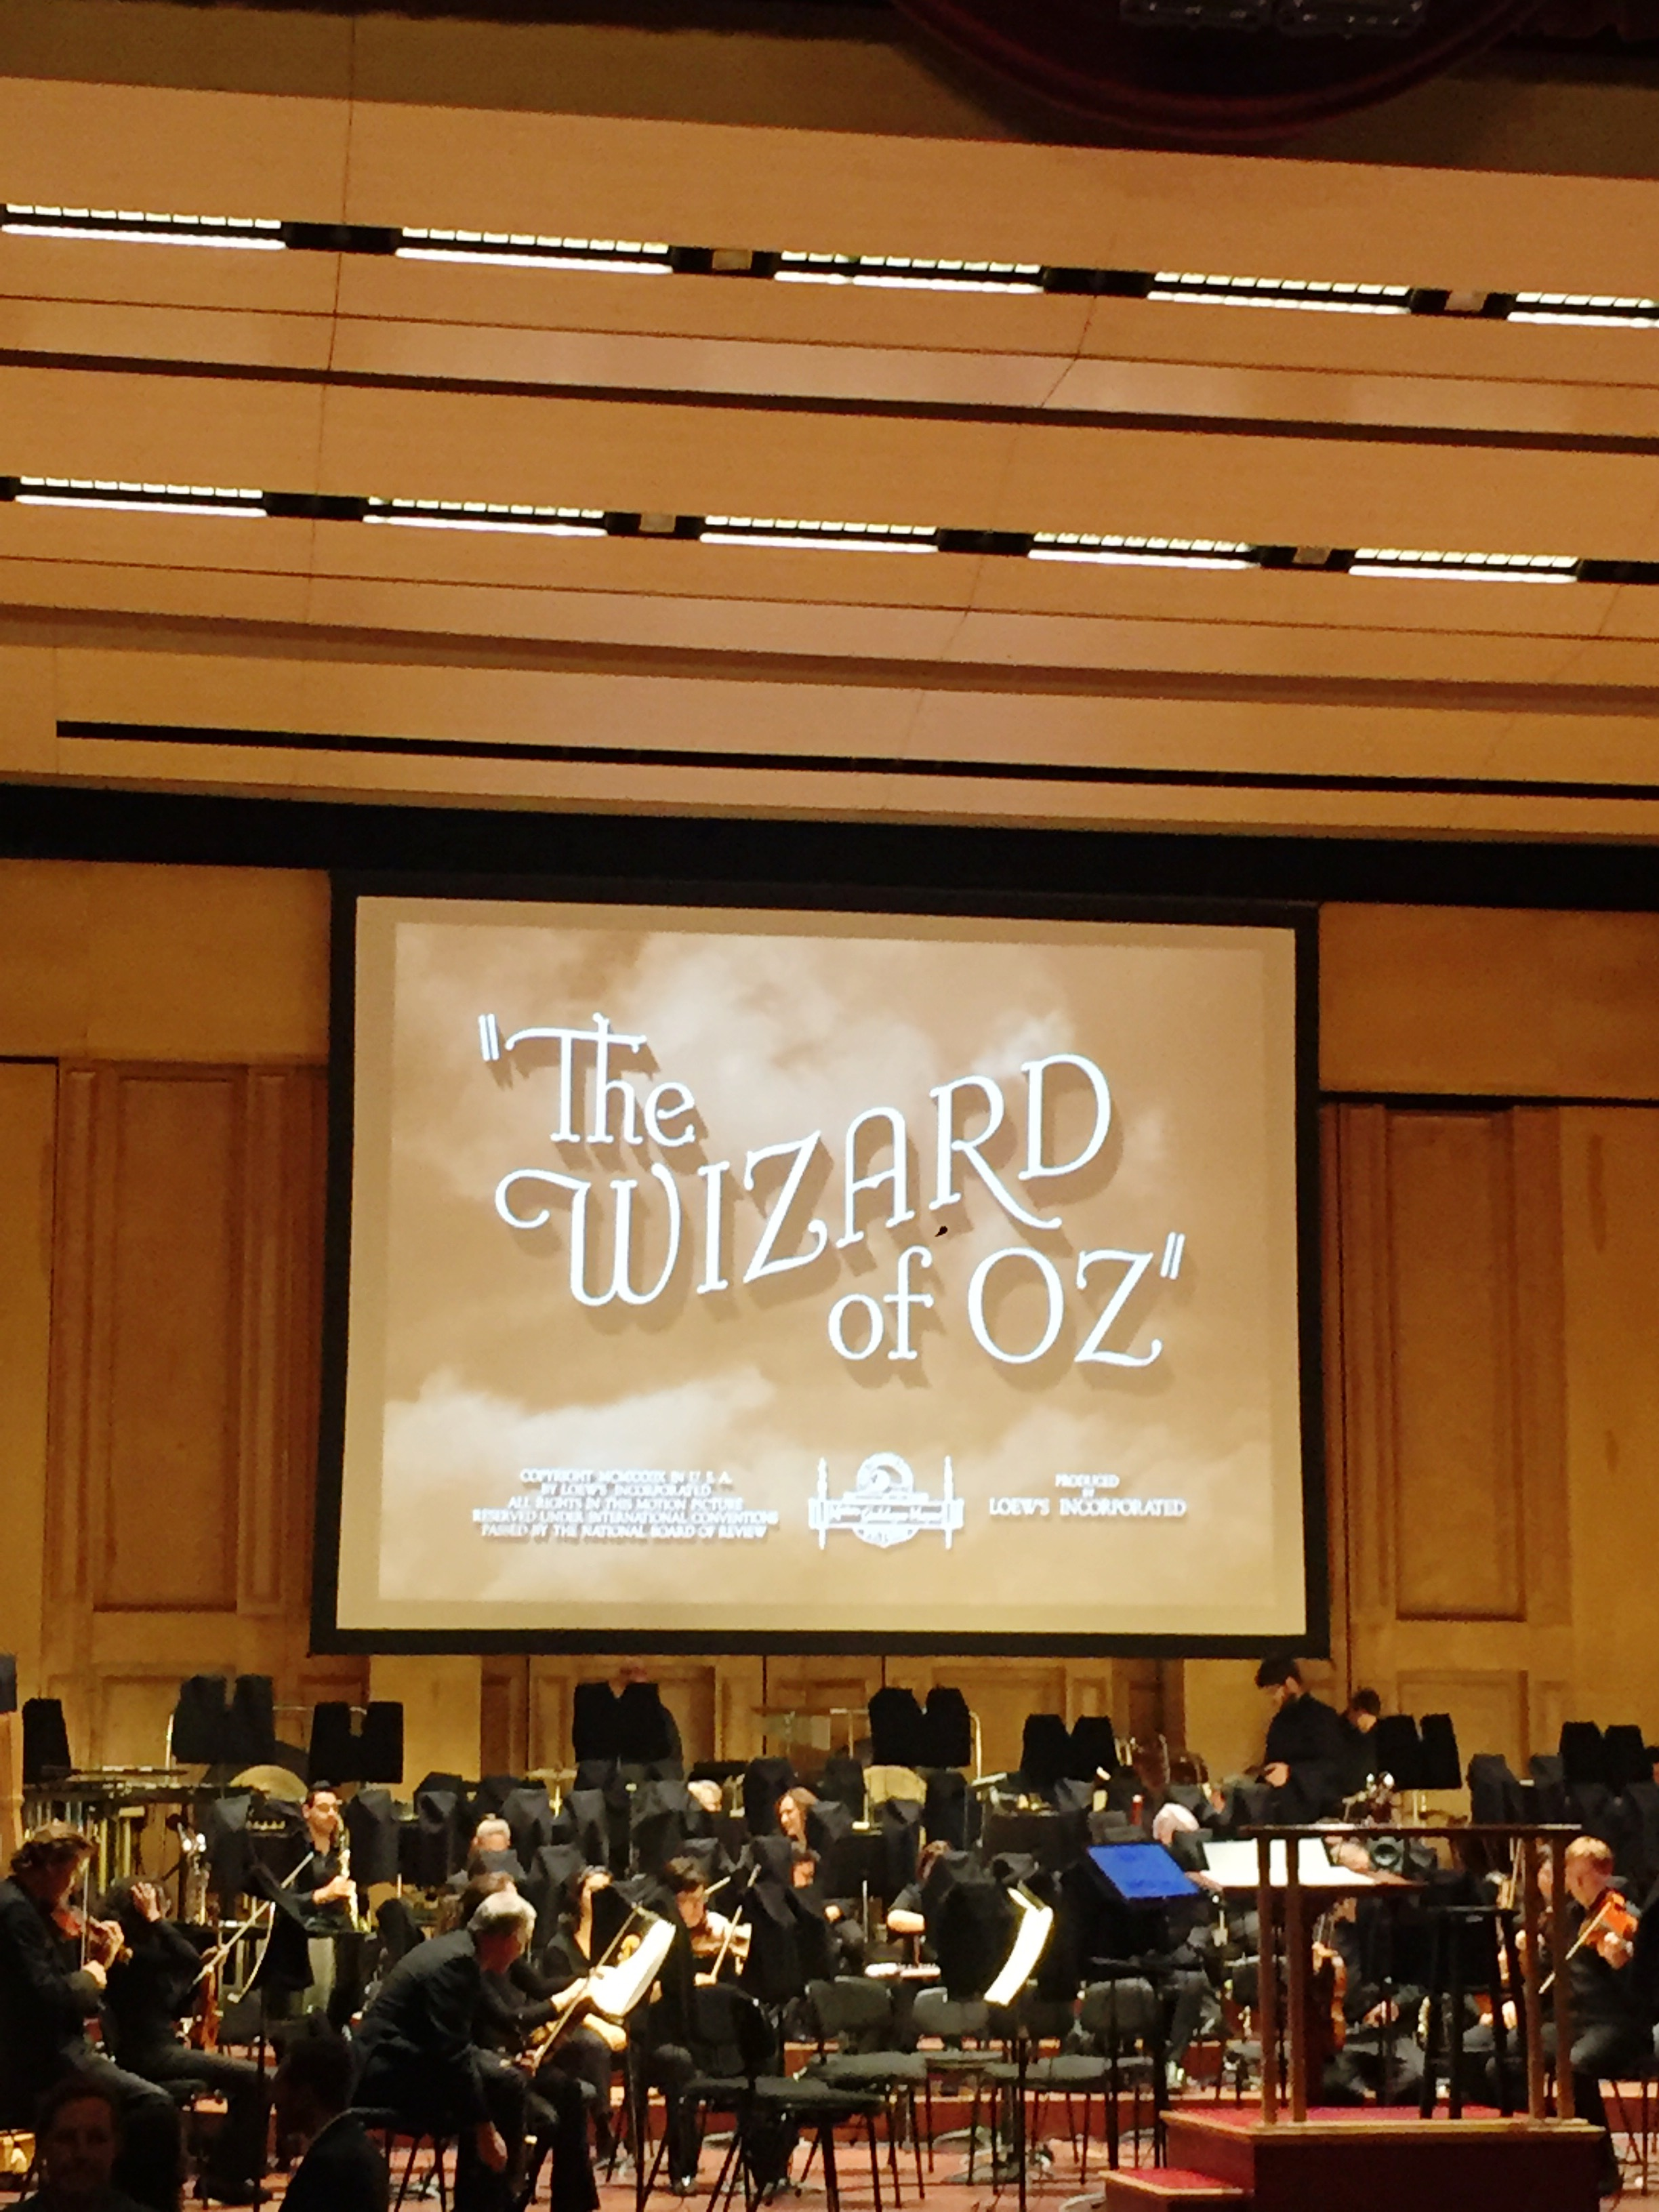 The Wizard of Oz xx The San Diego Symphony graphic